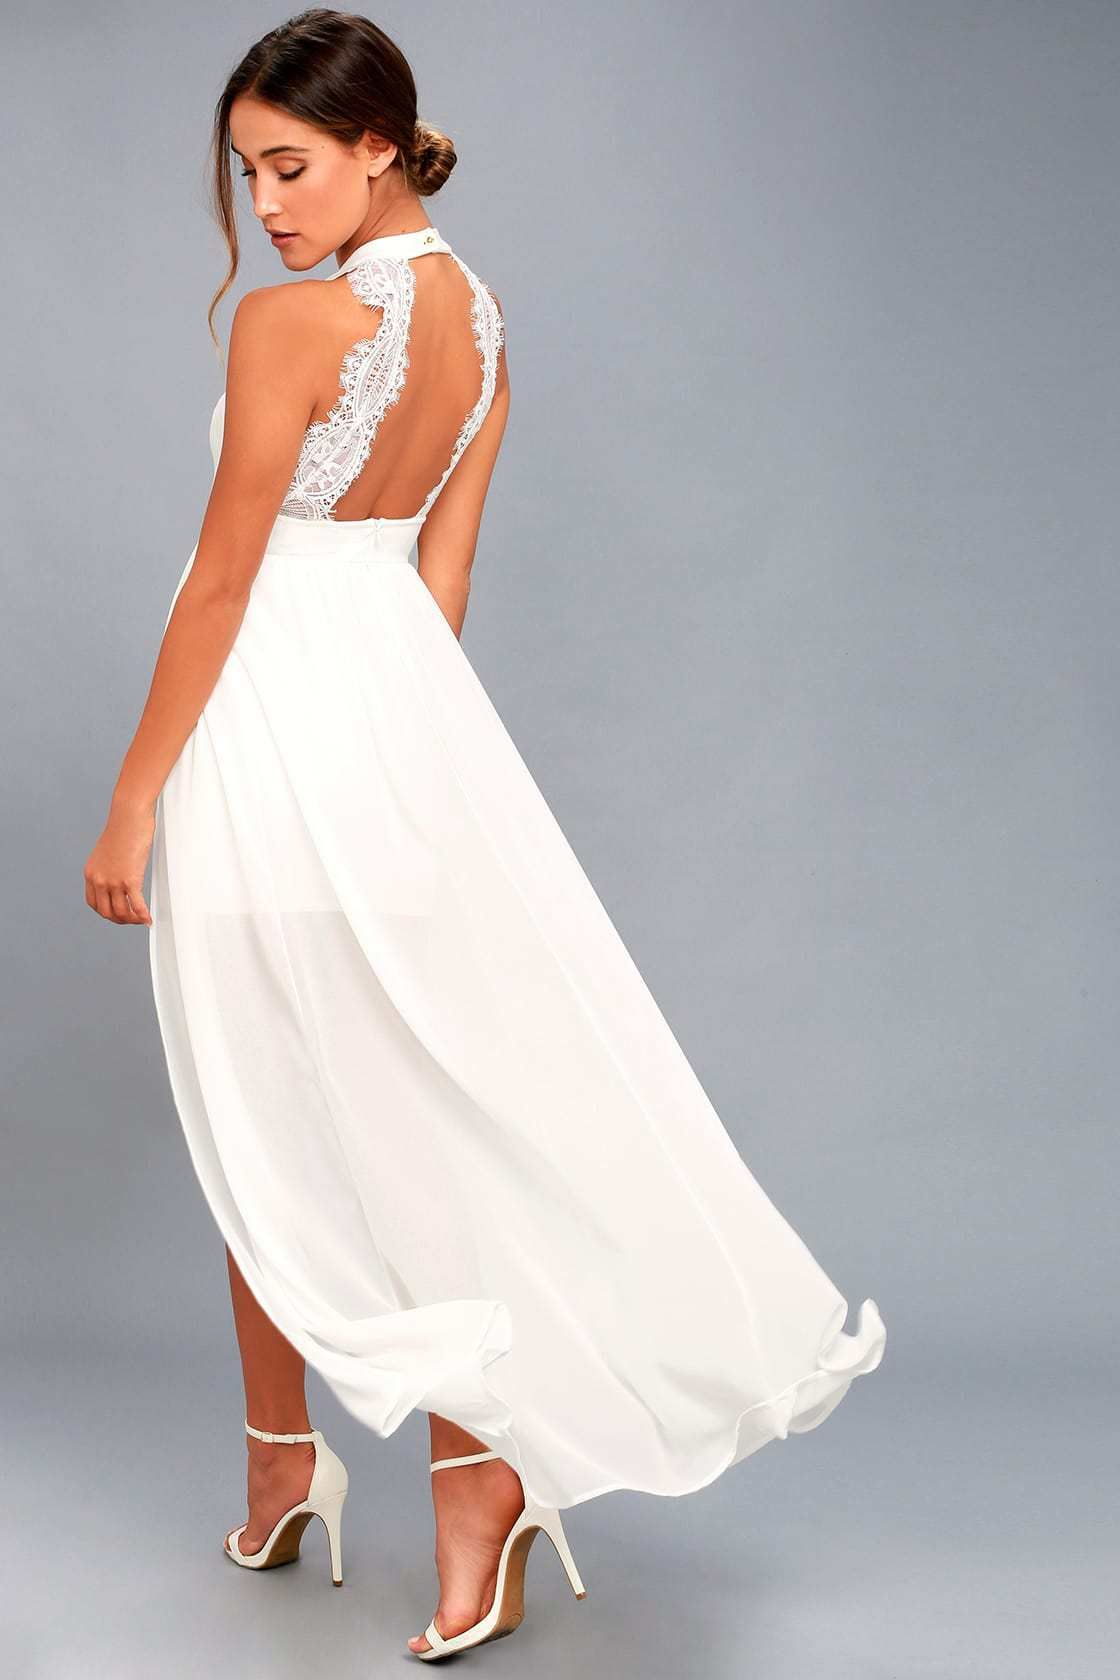 Little White Dresses: Perfect for Spring or Bridal Events